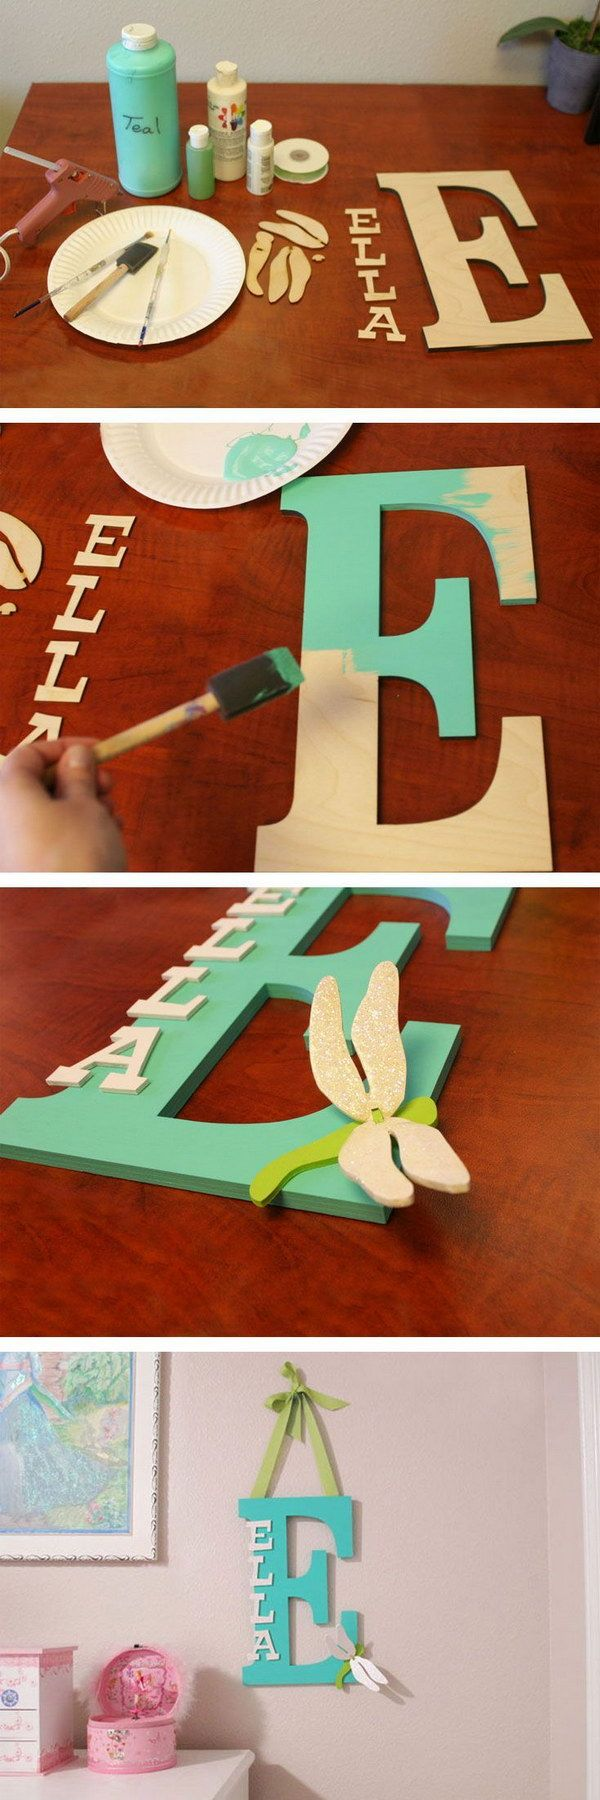 9 Awesome DIY Ideas for Making Your Own Decorative Letters | Crafts ...